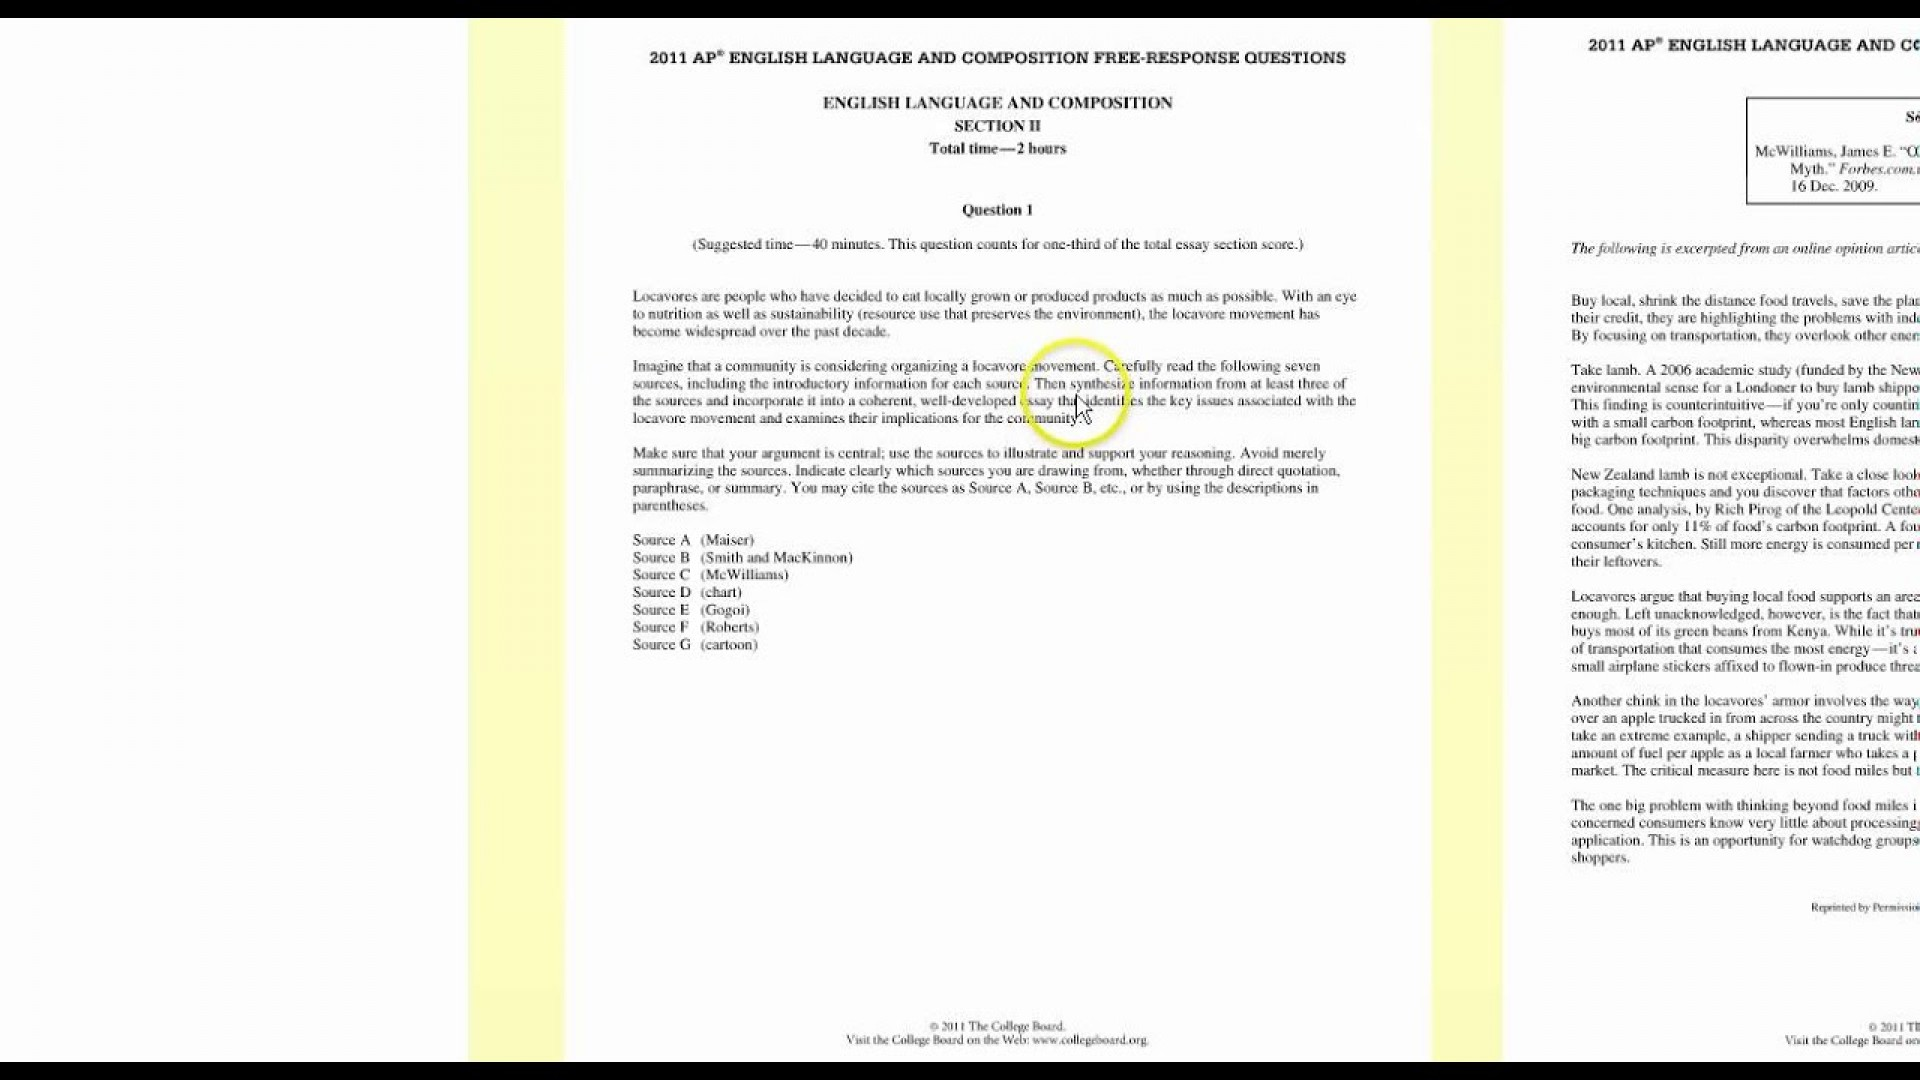 002 Ap Language Synthesis Essay Maxresdefault Amazing Ppt And Composition Prompt 2011 Tips 1920